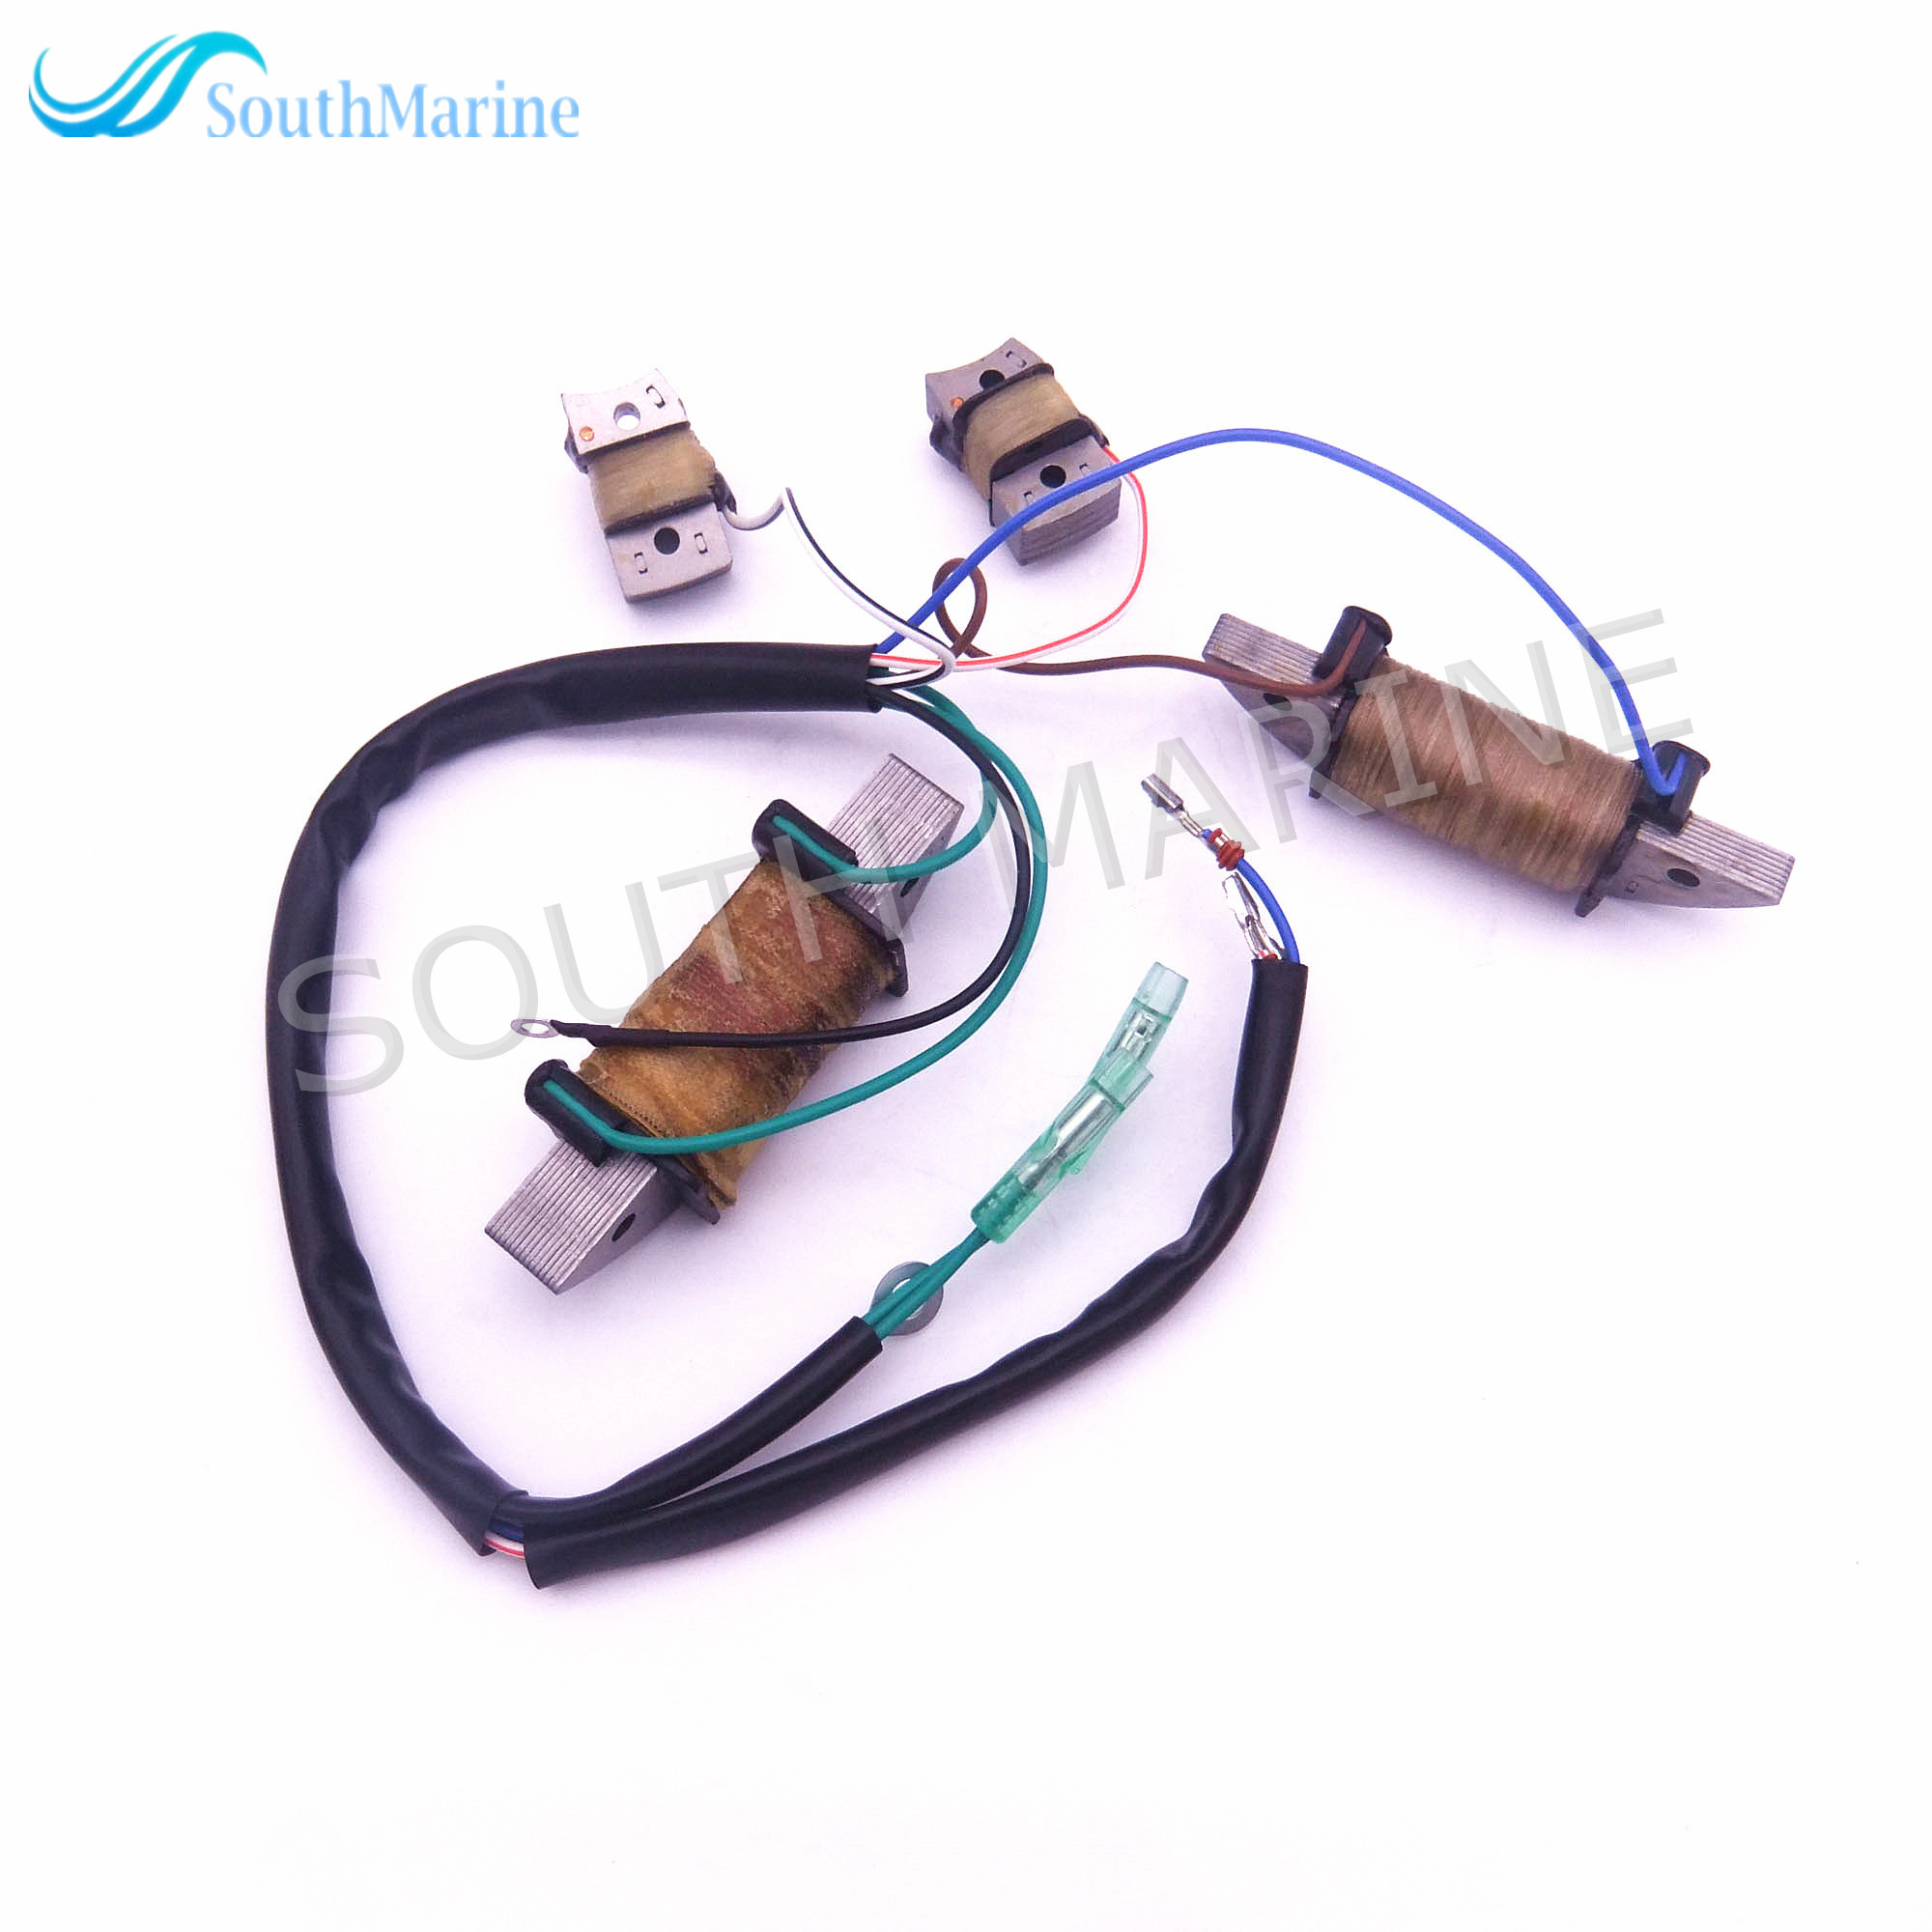 Boat Motor T36-04041000 Power Supply Coil Assy for Parsun 2-Stroke T36 T40J Outboard Engine